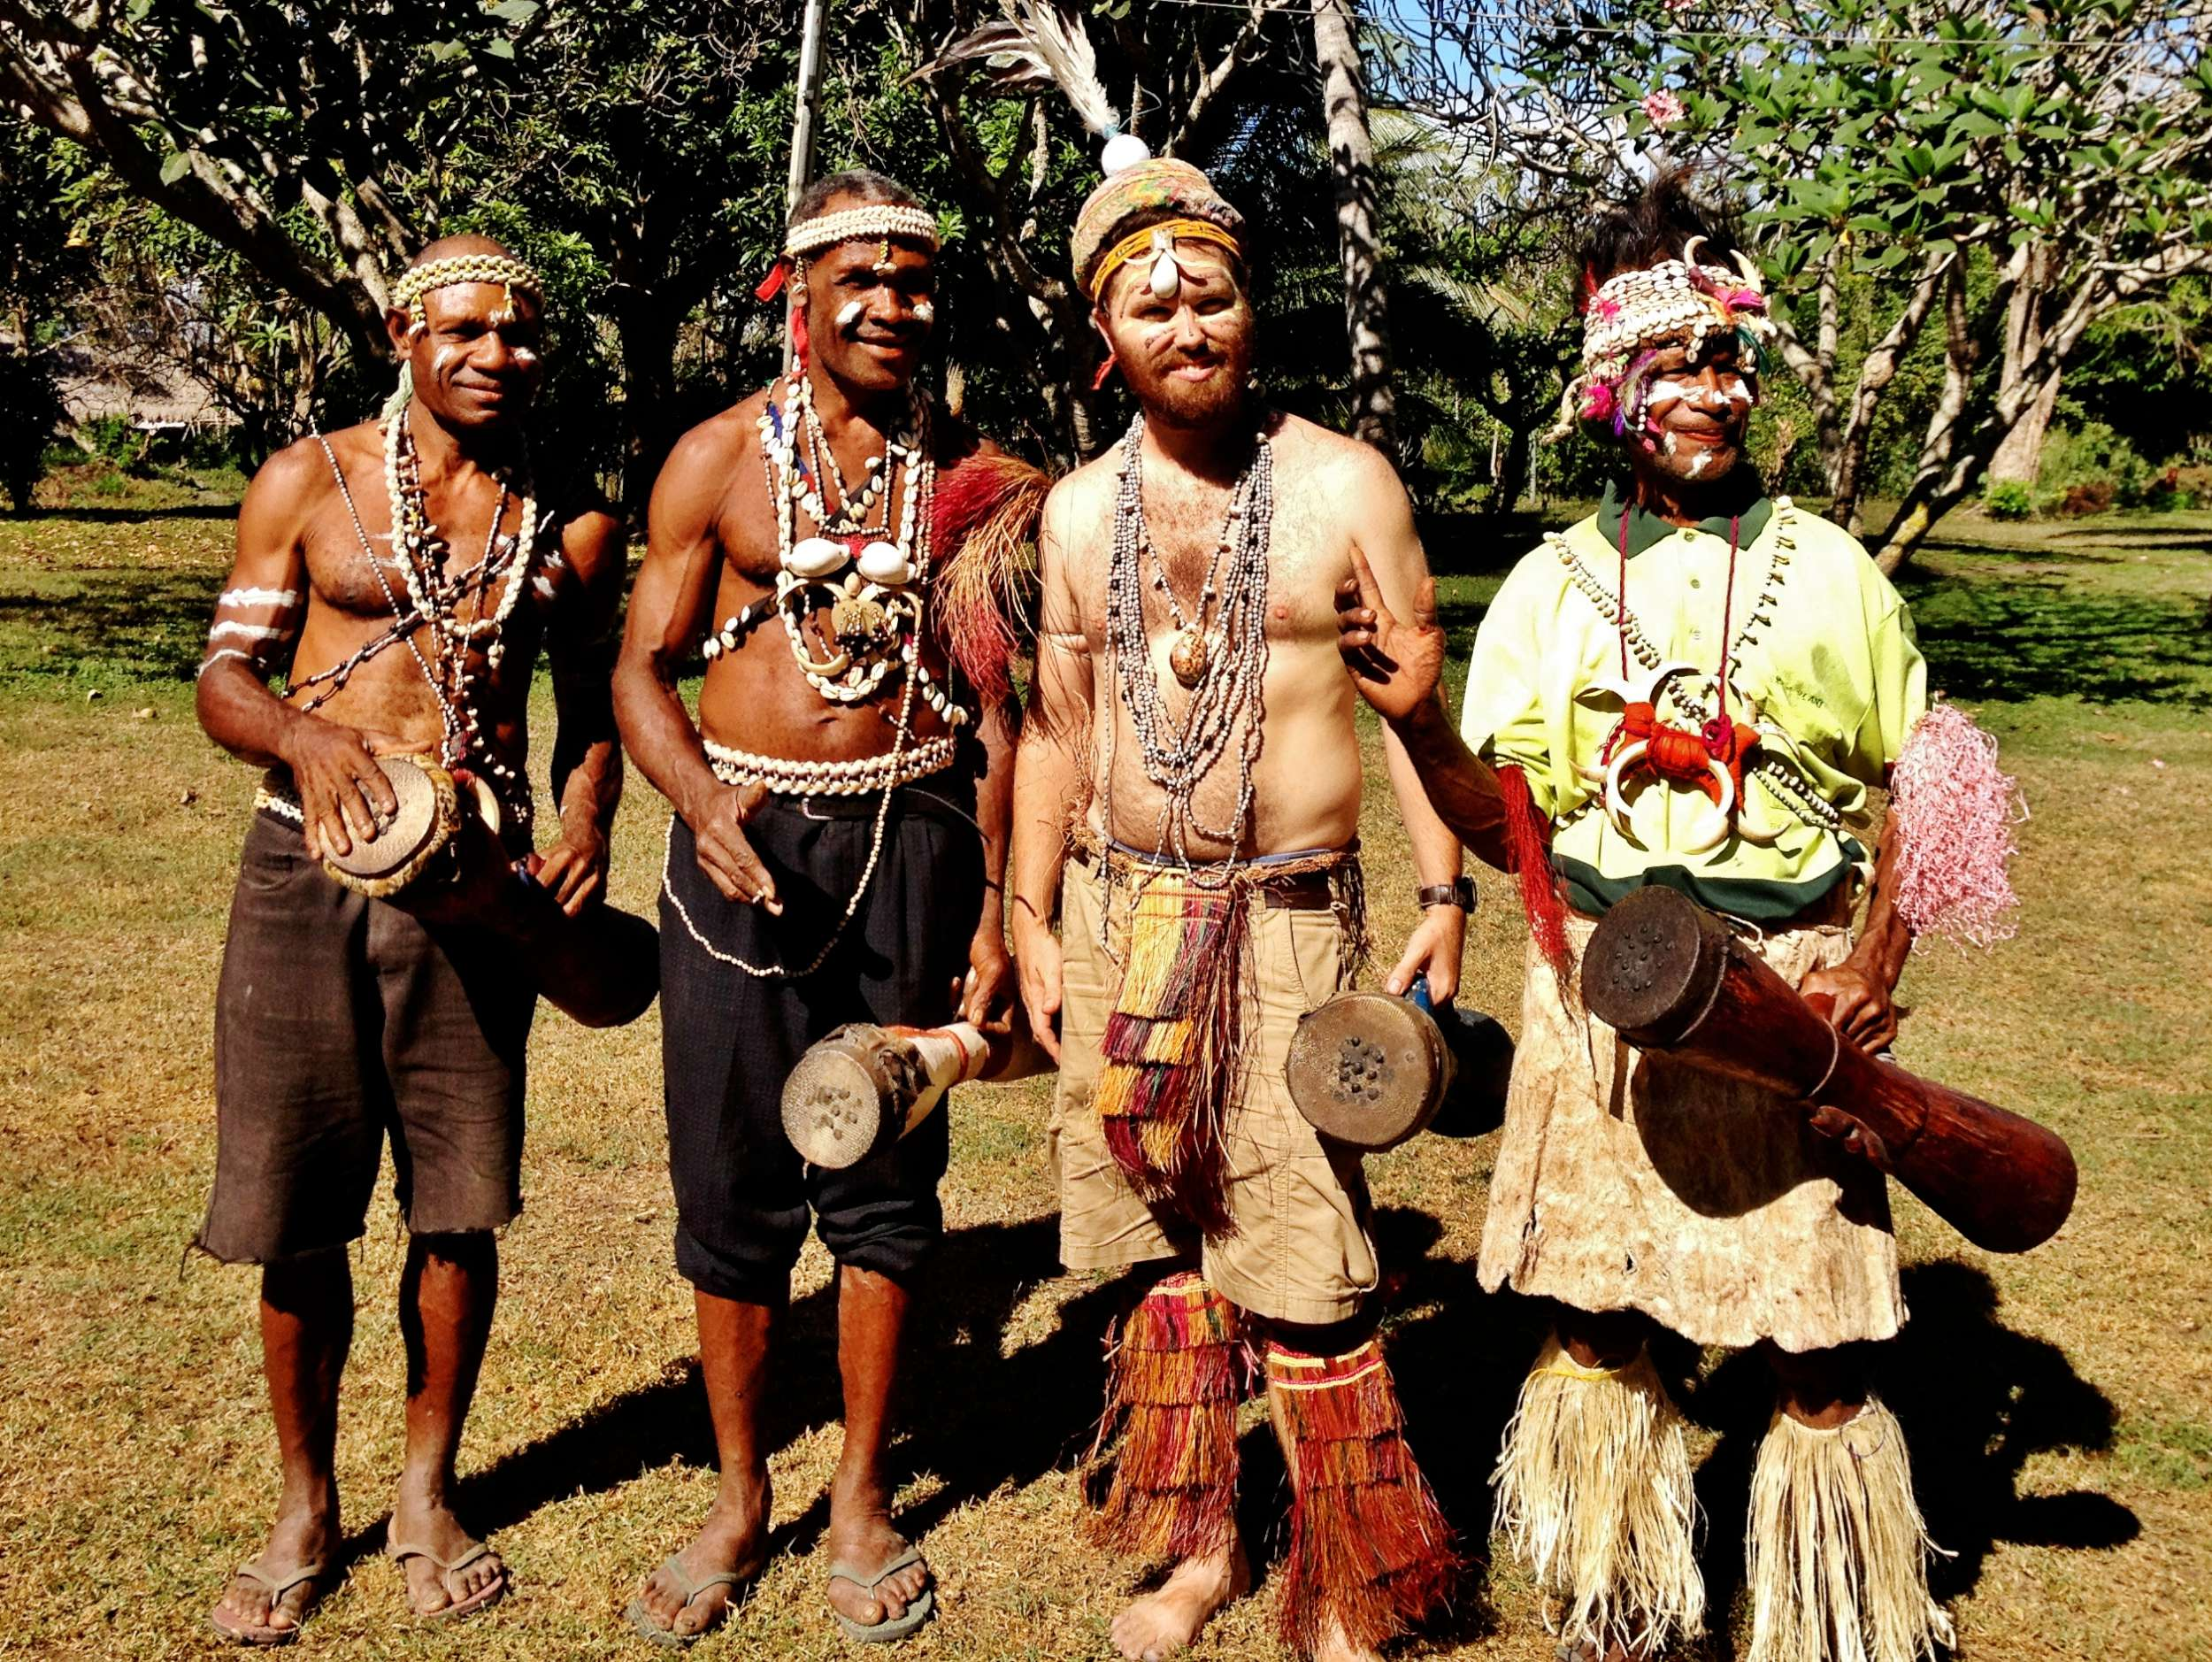 """John with Jerry (his """"brata"""" or brother), and withNalauand Mattias (Papa's nephews). All with kundus in hand."""